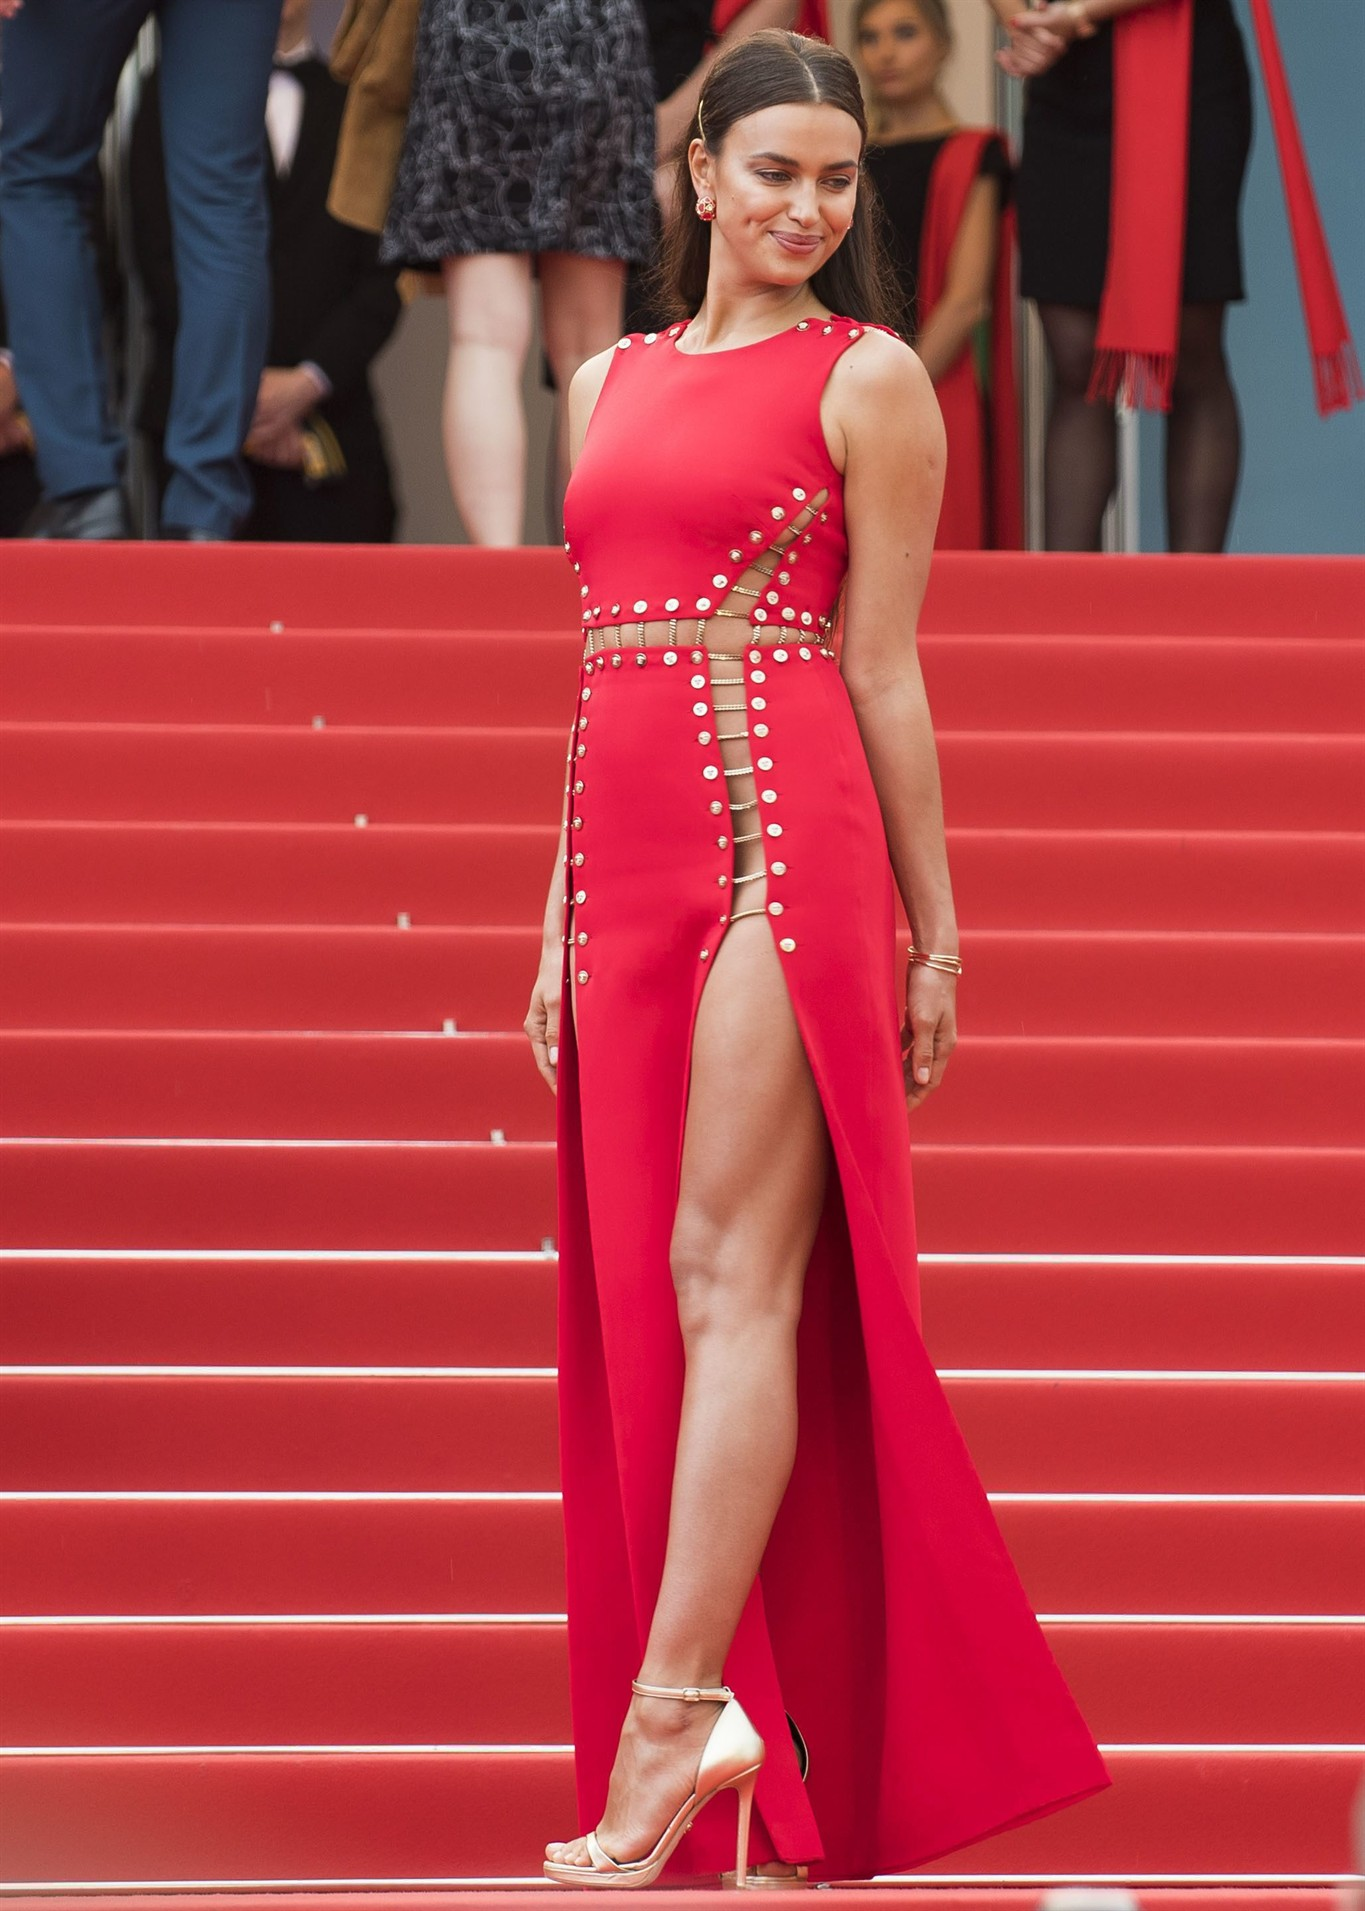 Vietnamese actress stuns Cannes red carpet, Ly Nha Ky, cannes film festival 2018 | Glamorous